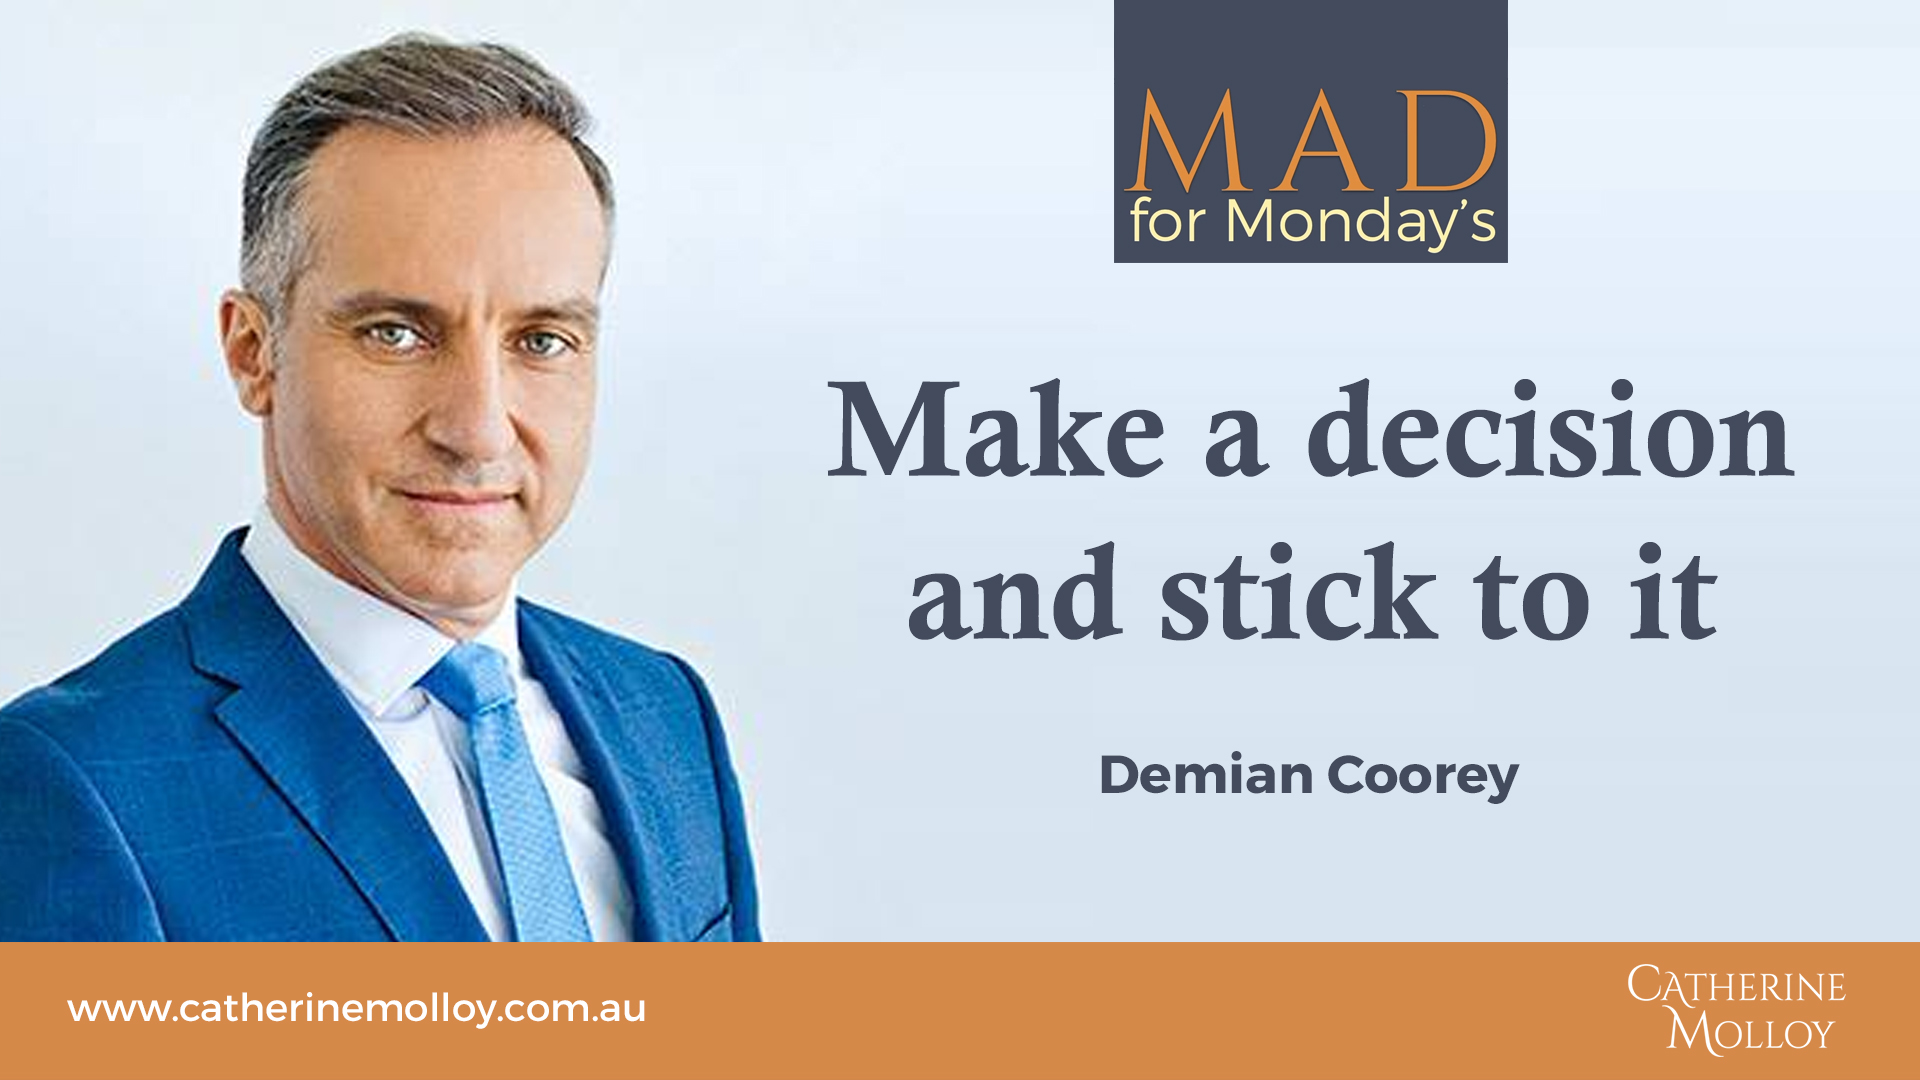 MAD for Monday's – Make a decision and stick to it